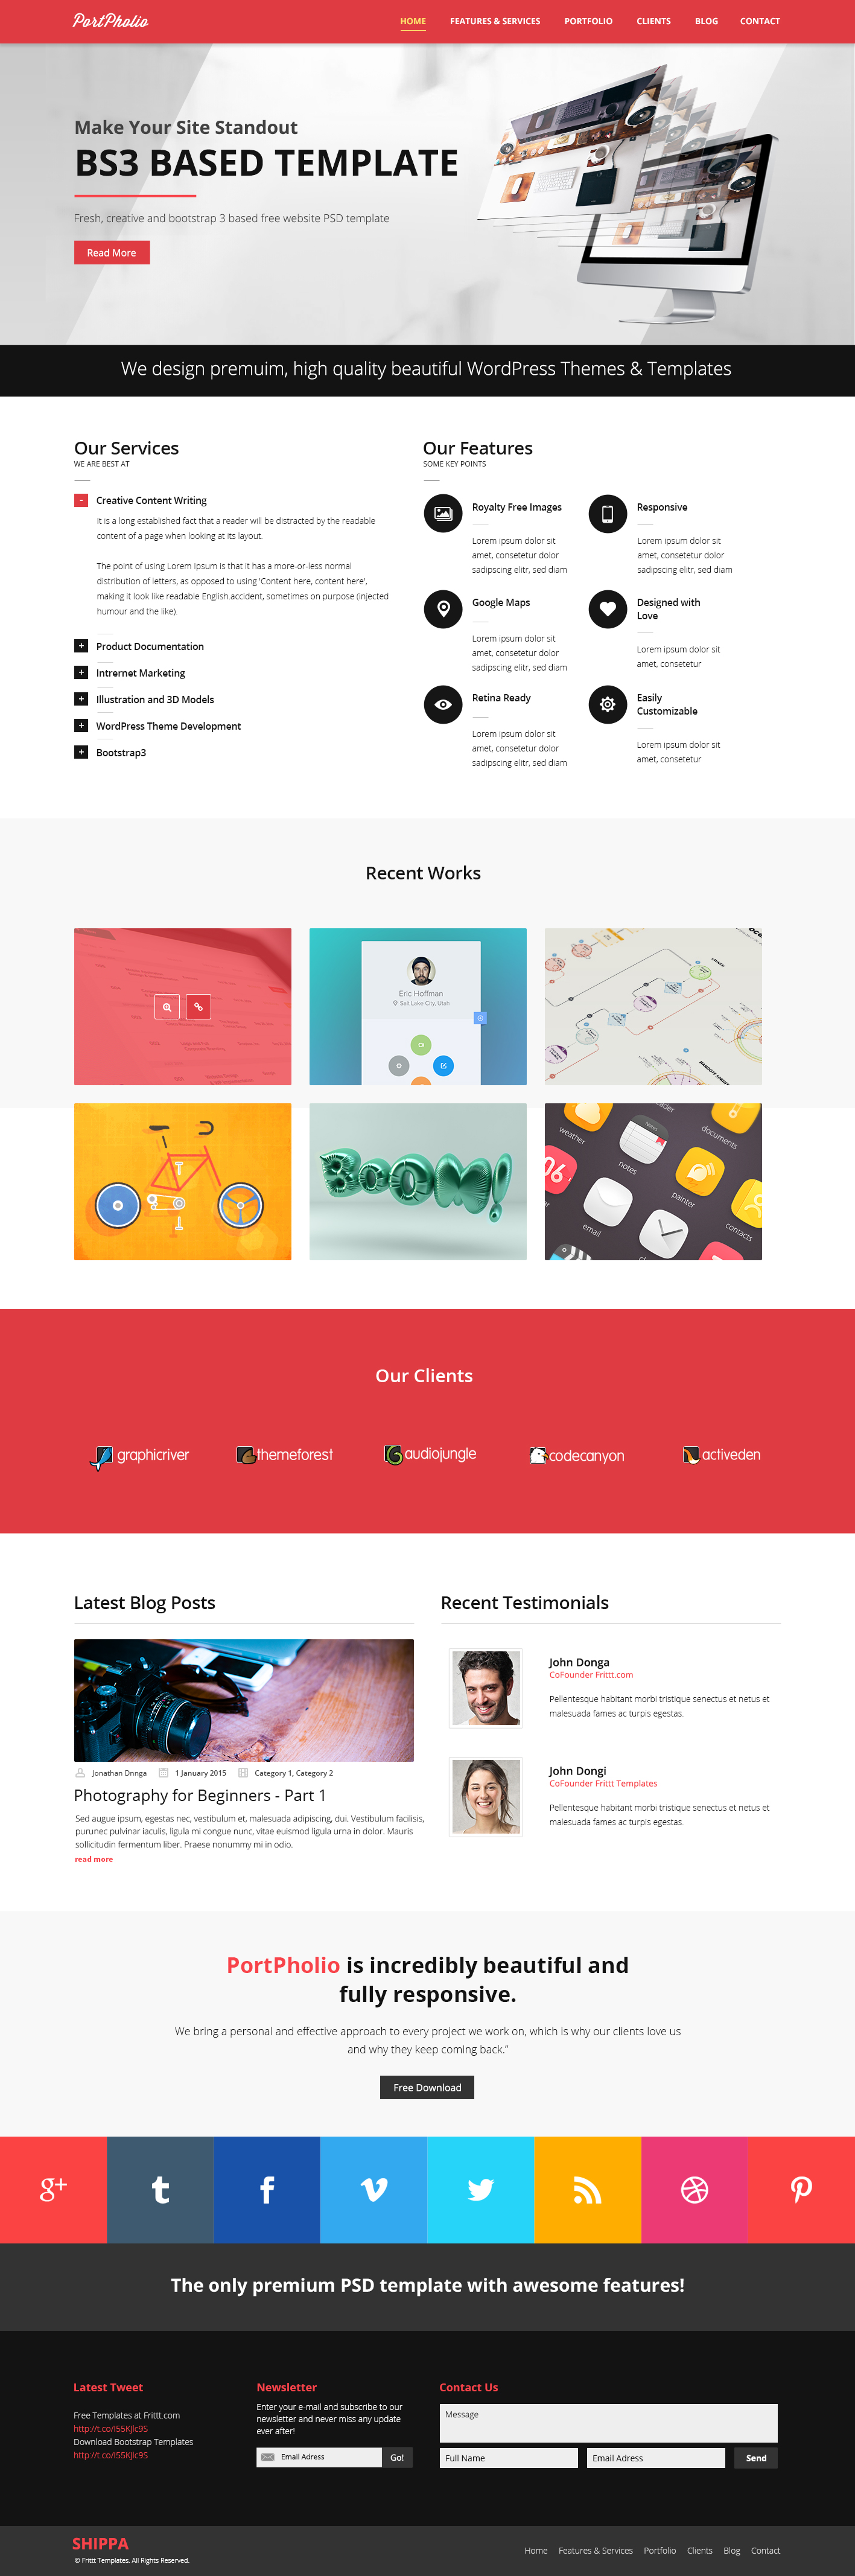 PortPholio is a free portfolio PSD Website Template! PortPholio is a ...